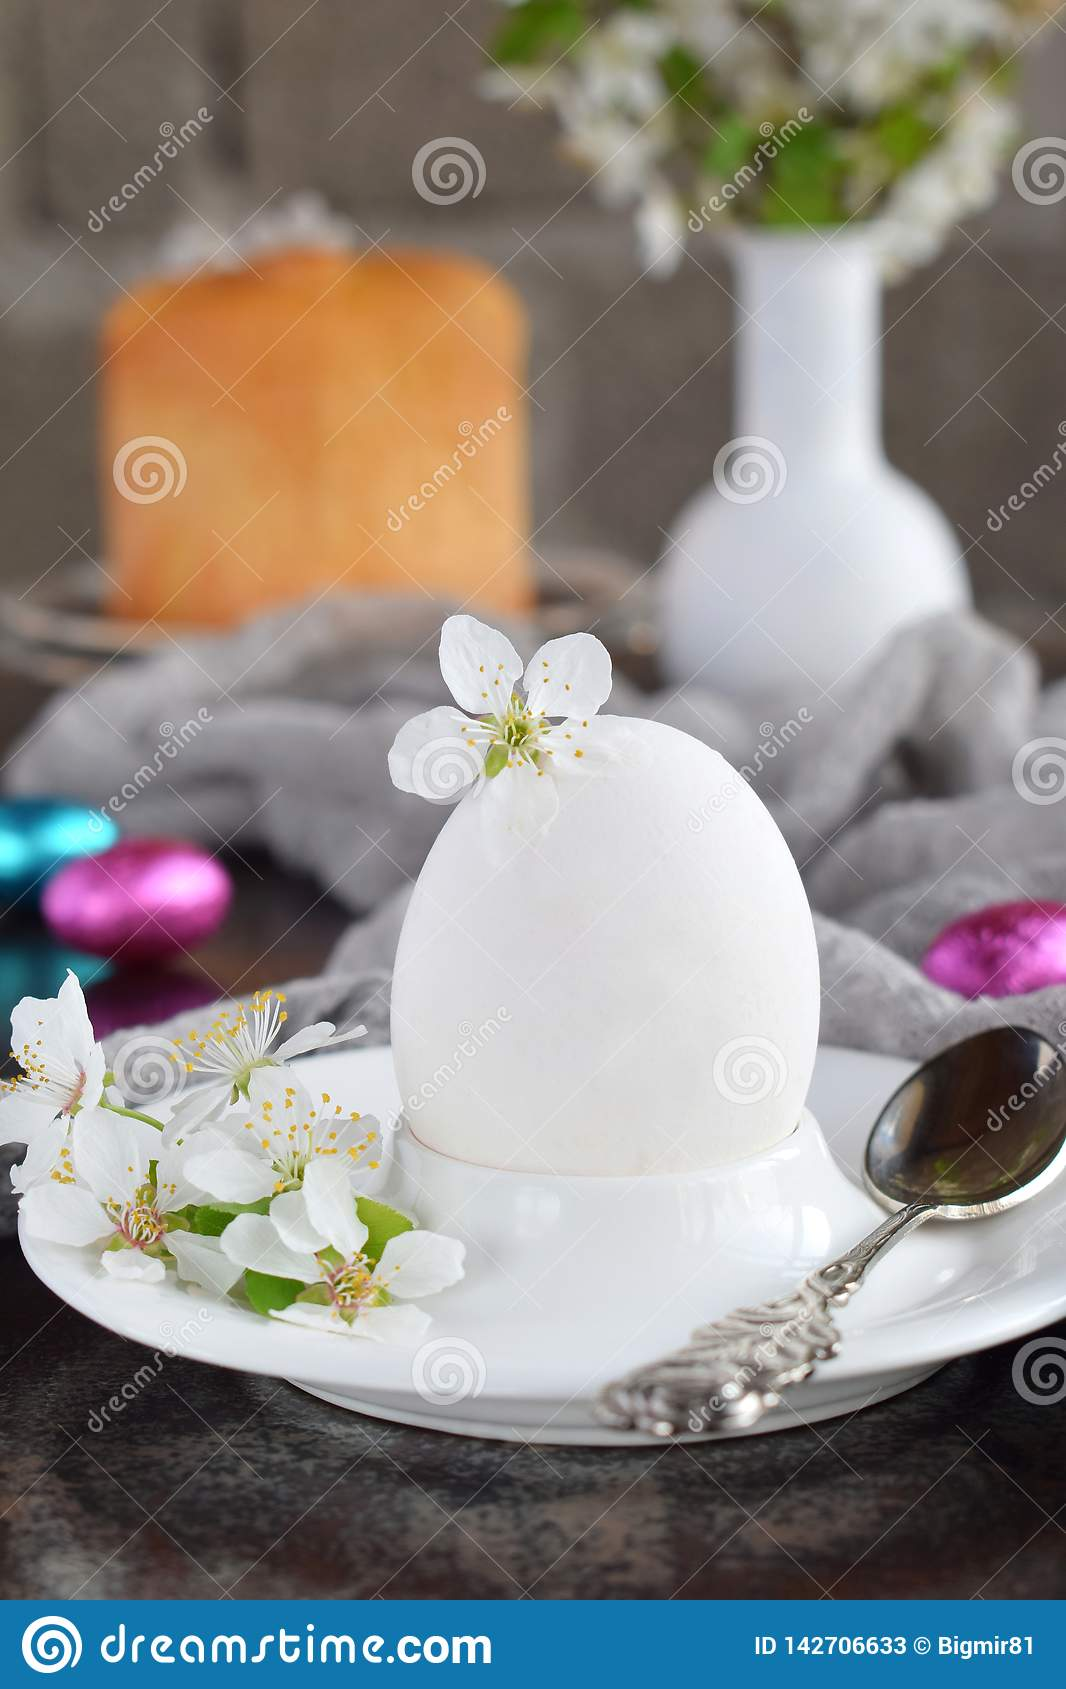 White egg and flowers on clay plate. Happy Easter card. Holidays breakfast concept. Festive table place setting decoration with